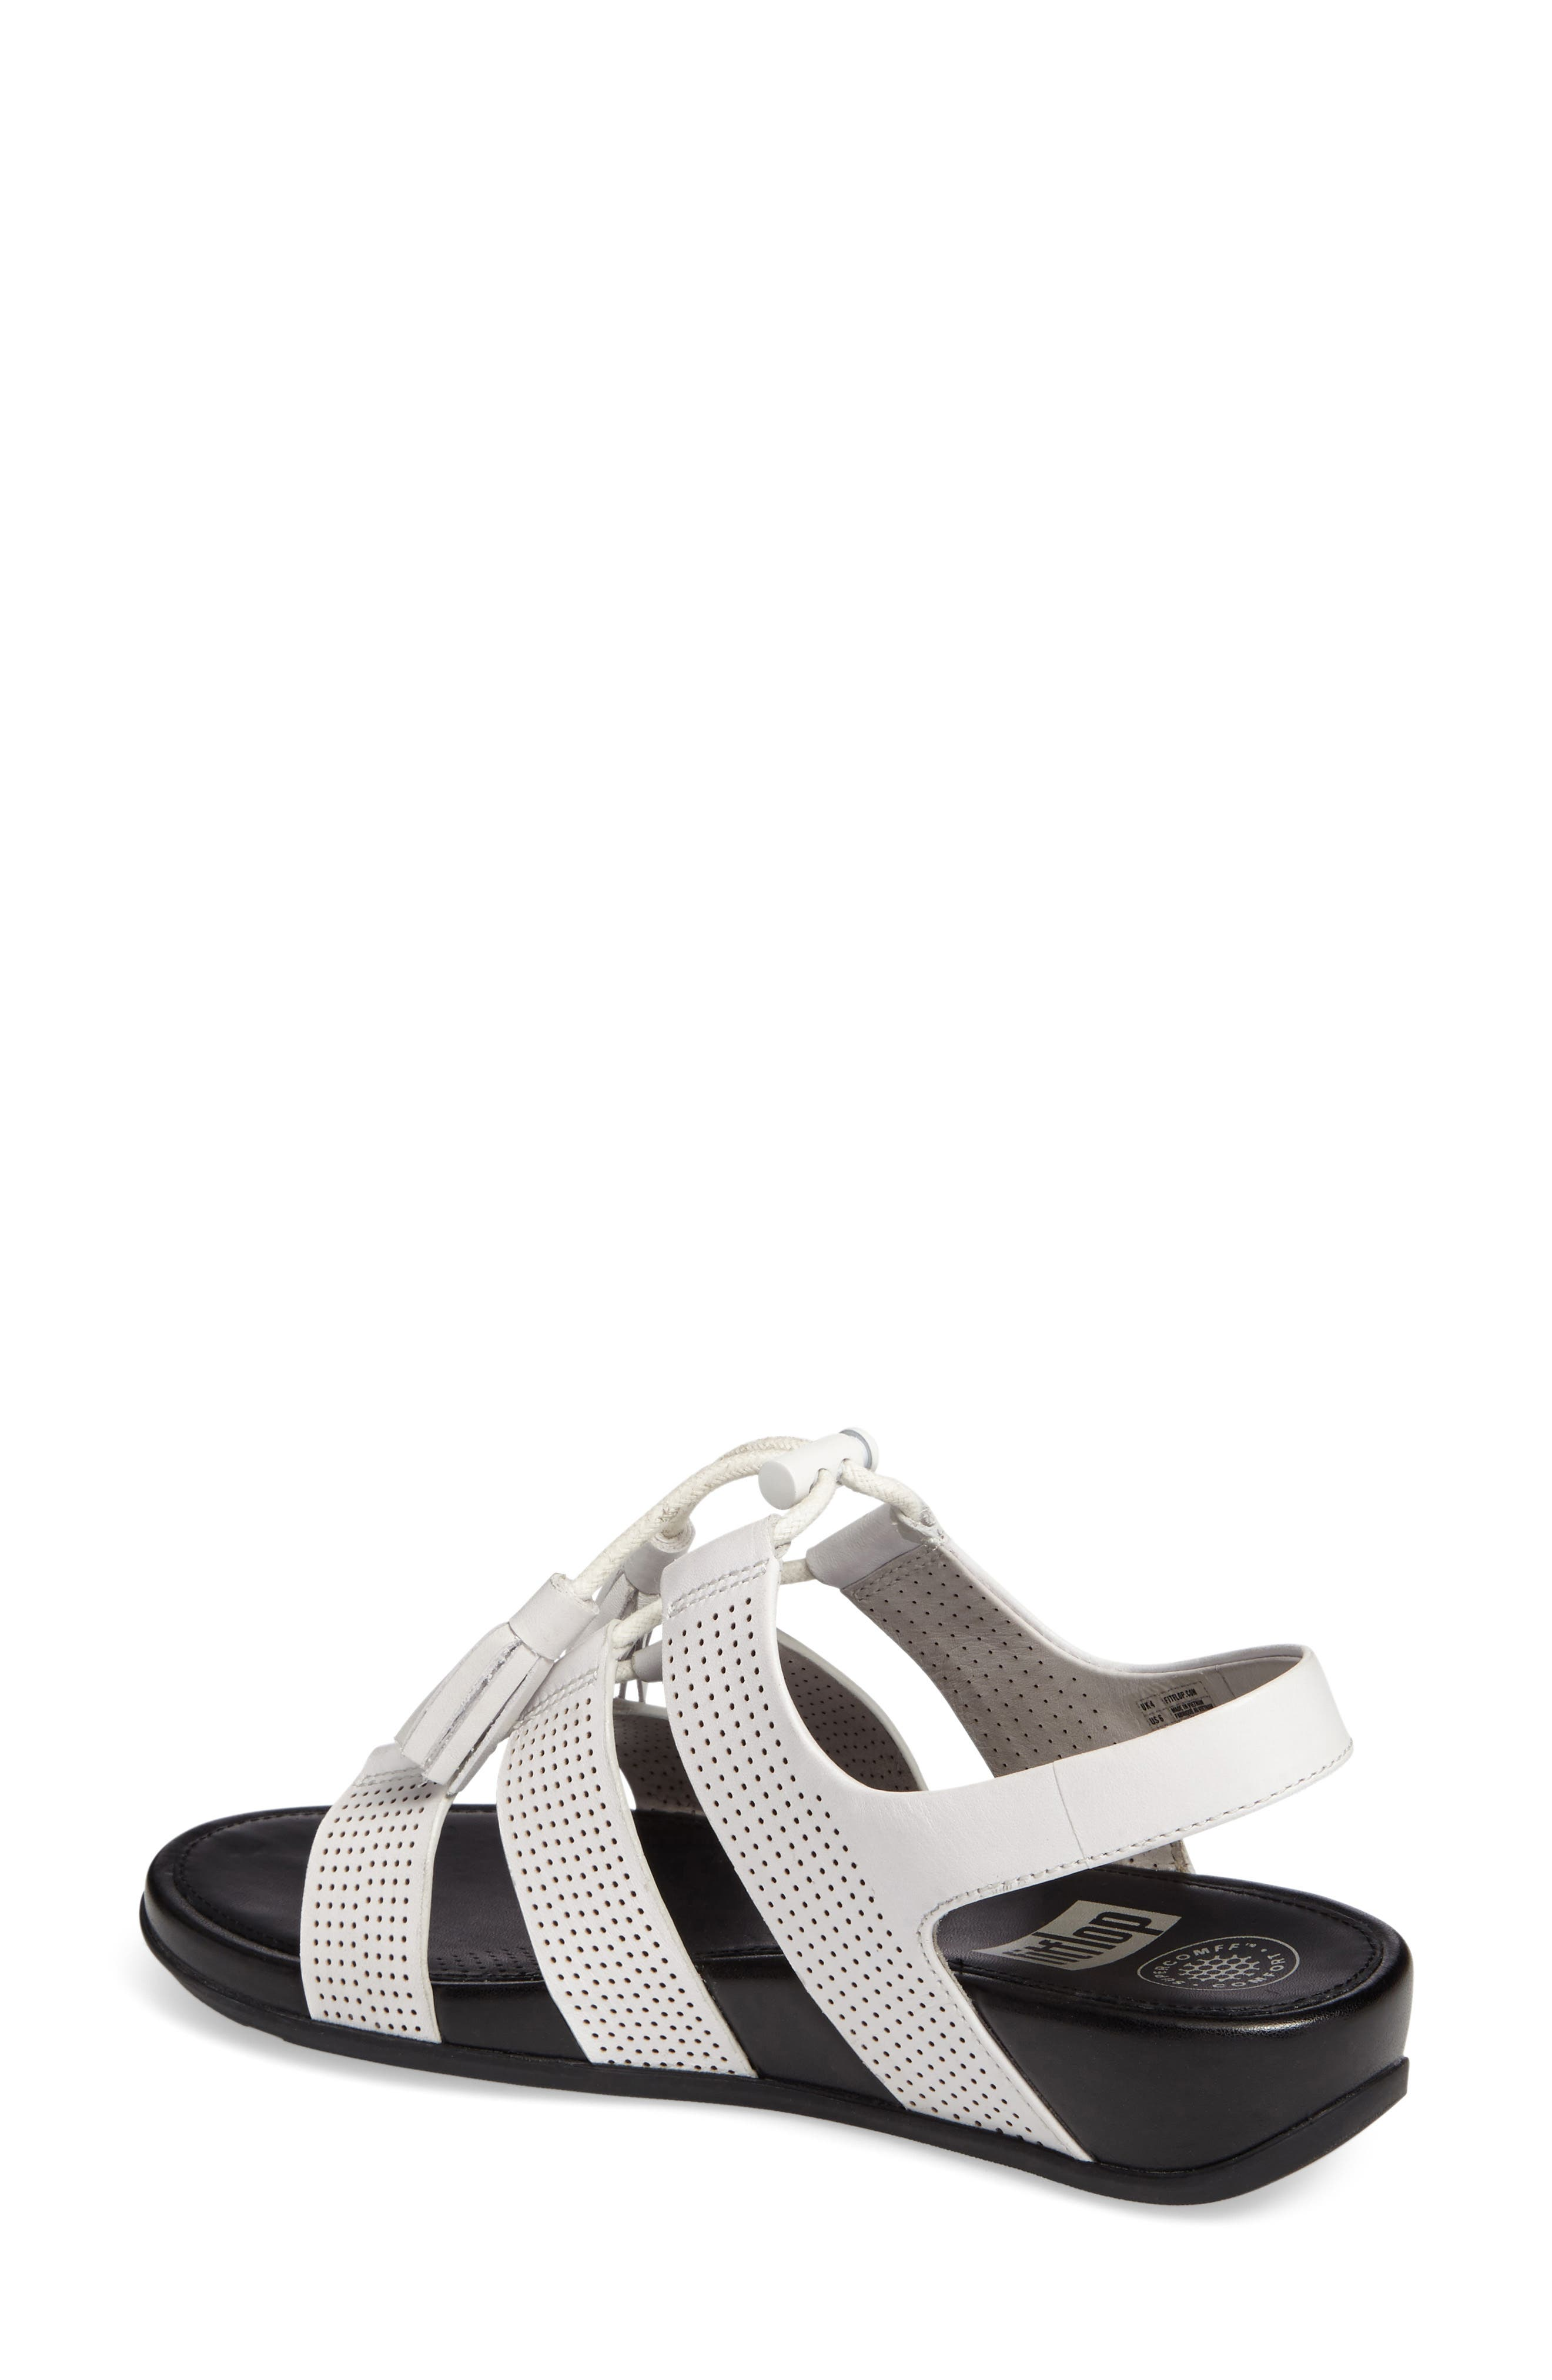 Alternate Image 2  - FitFlop Gladdie Lace-Up Sandal (Women)